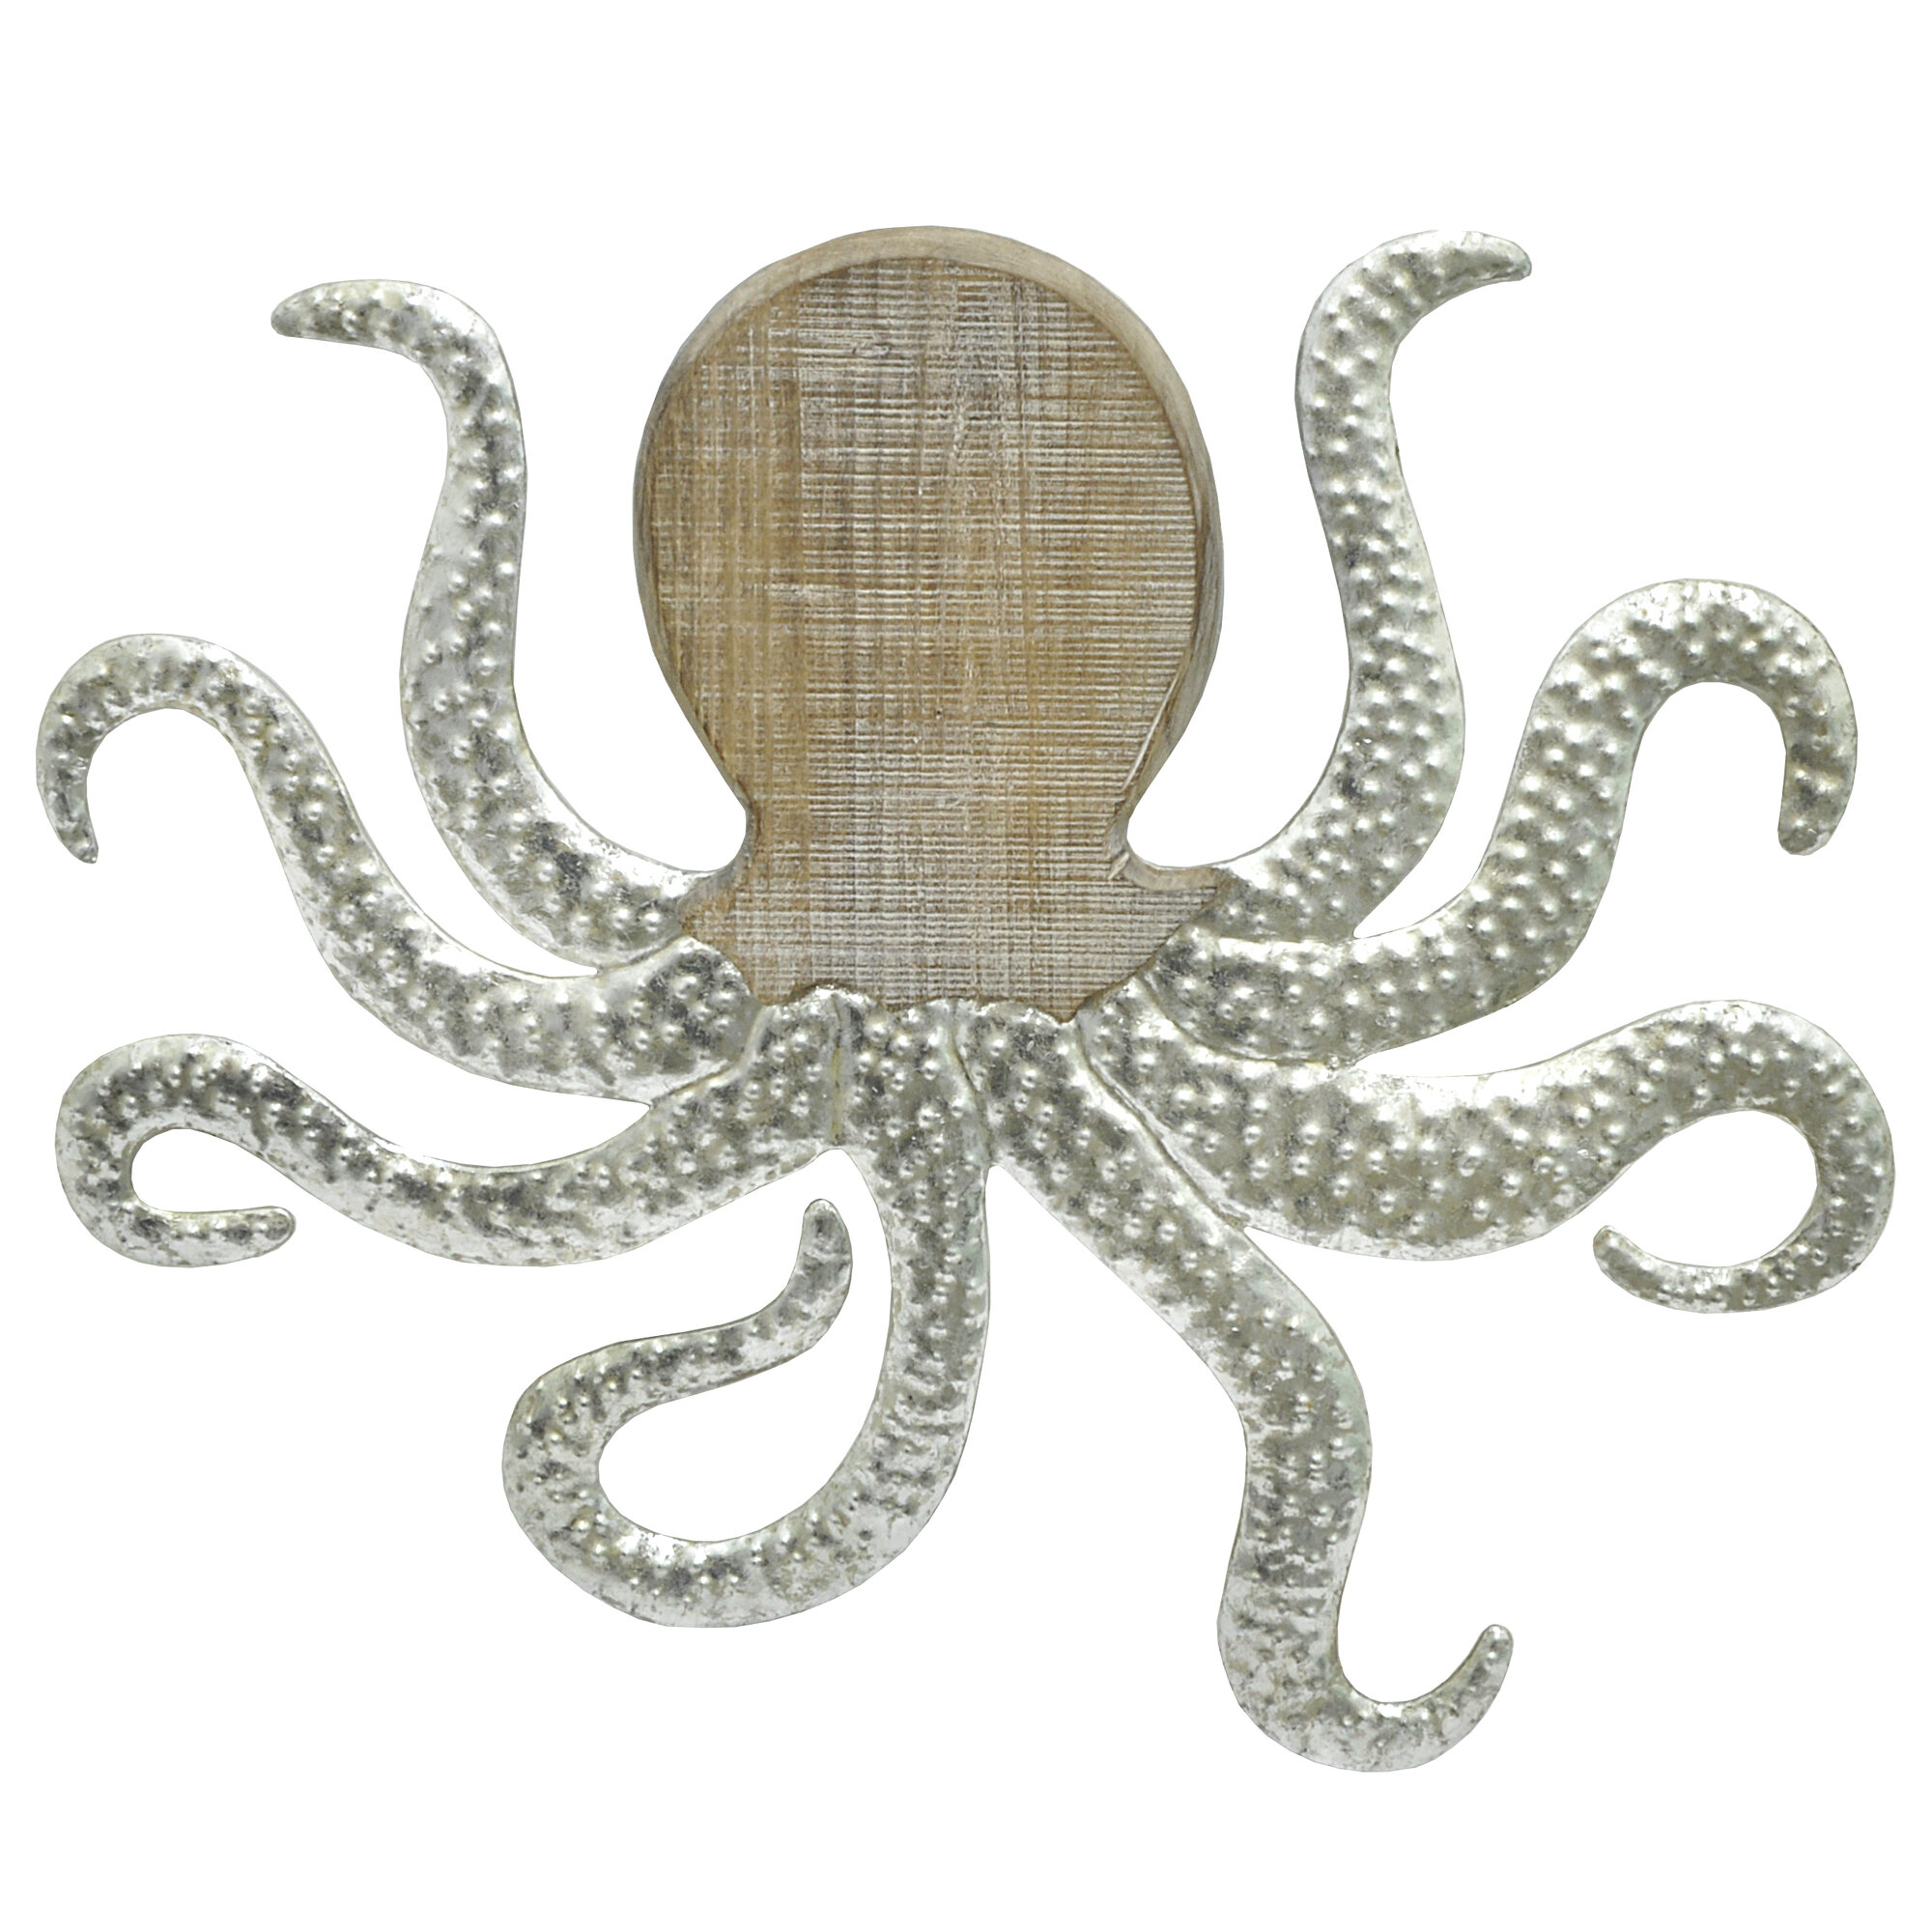 Wooden Octopus Wall Decor : Three hands co octopus wood and metal wall d?cor